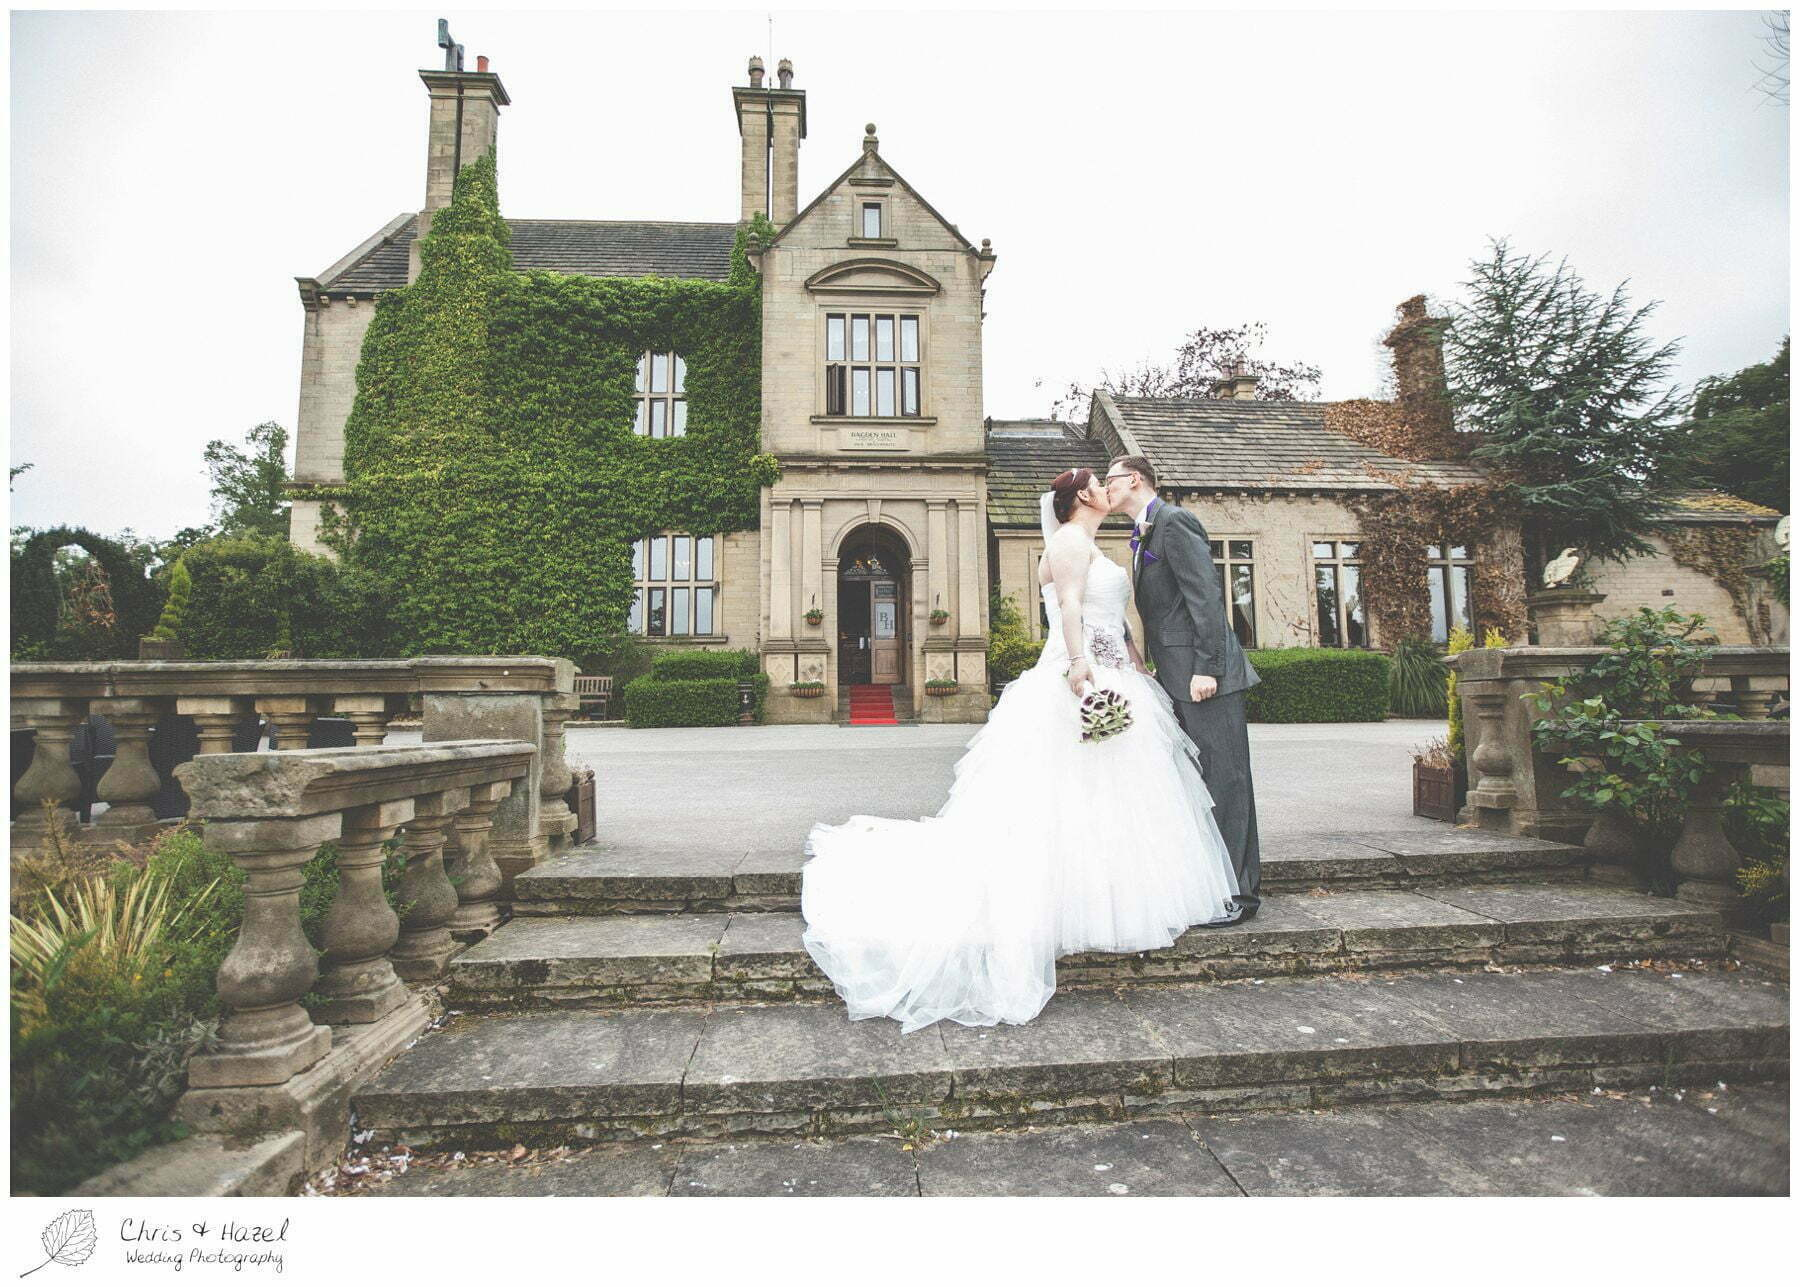 bride and groom portraits, bride and groom formal photographs, bagden hall wedding venue, documentary wedding photography, denny dale, huddersfield, Wedding Photographer, Bagden Hall, Wedding Photography, Chris and Hazel Wedding Photography, Alex tomenson, Vicky hunt